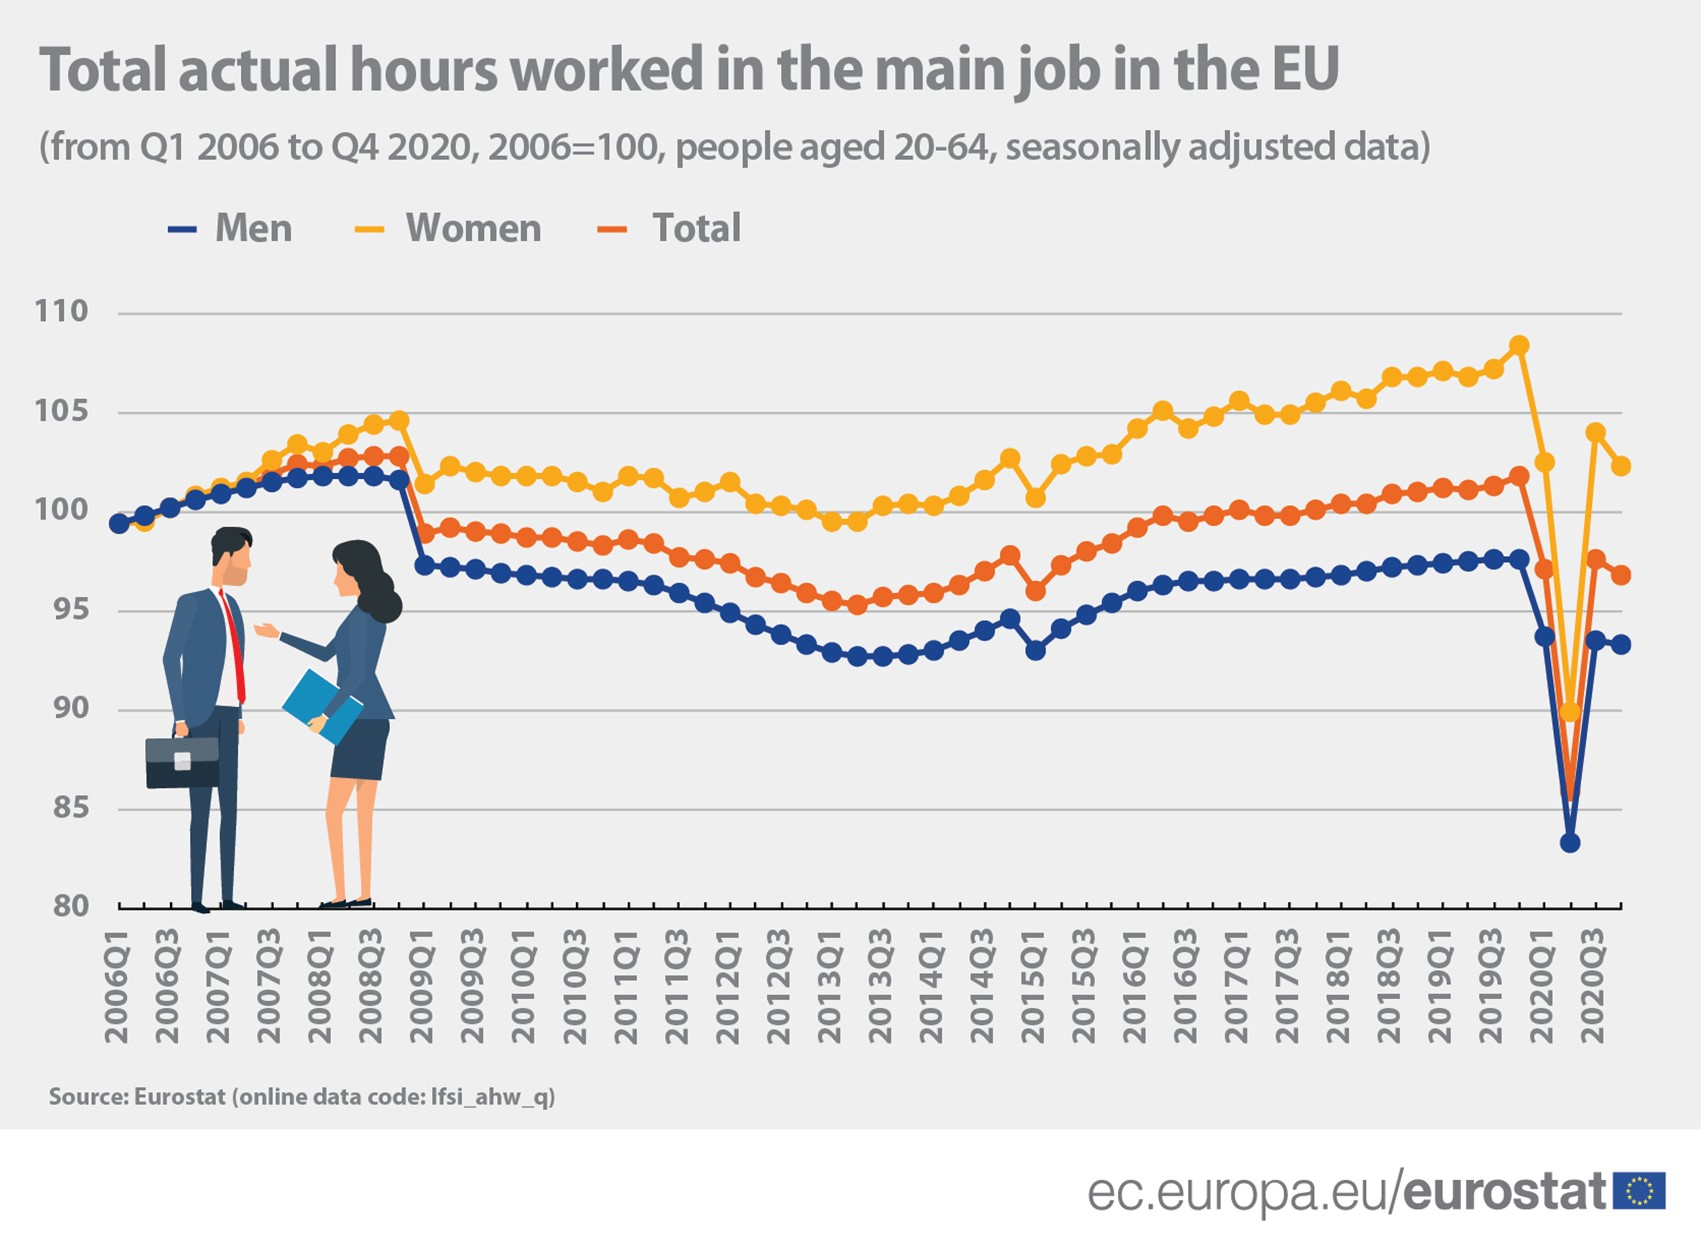 Working hours in the EU